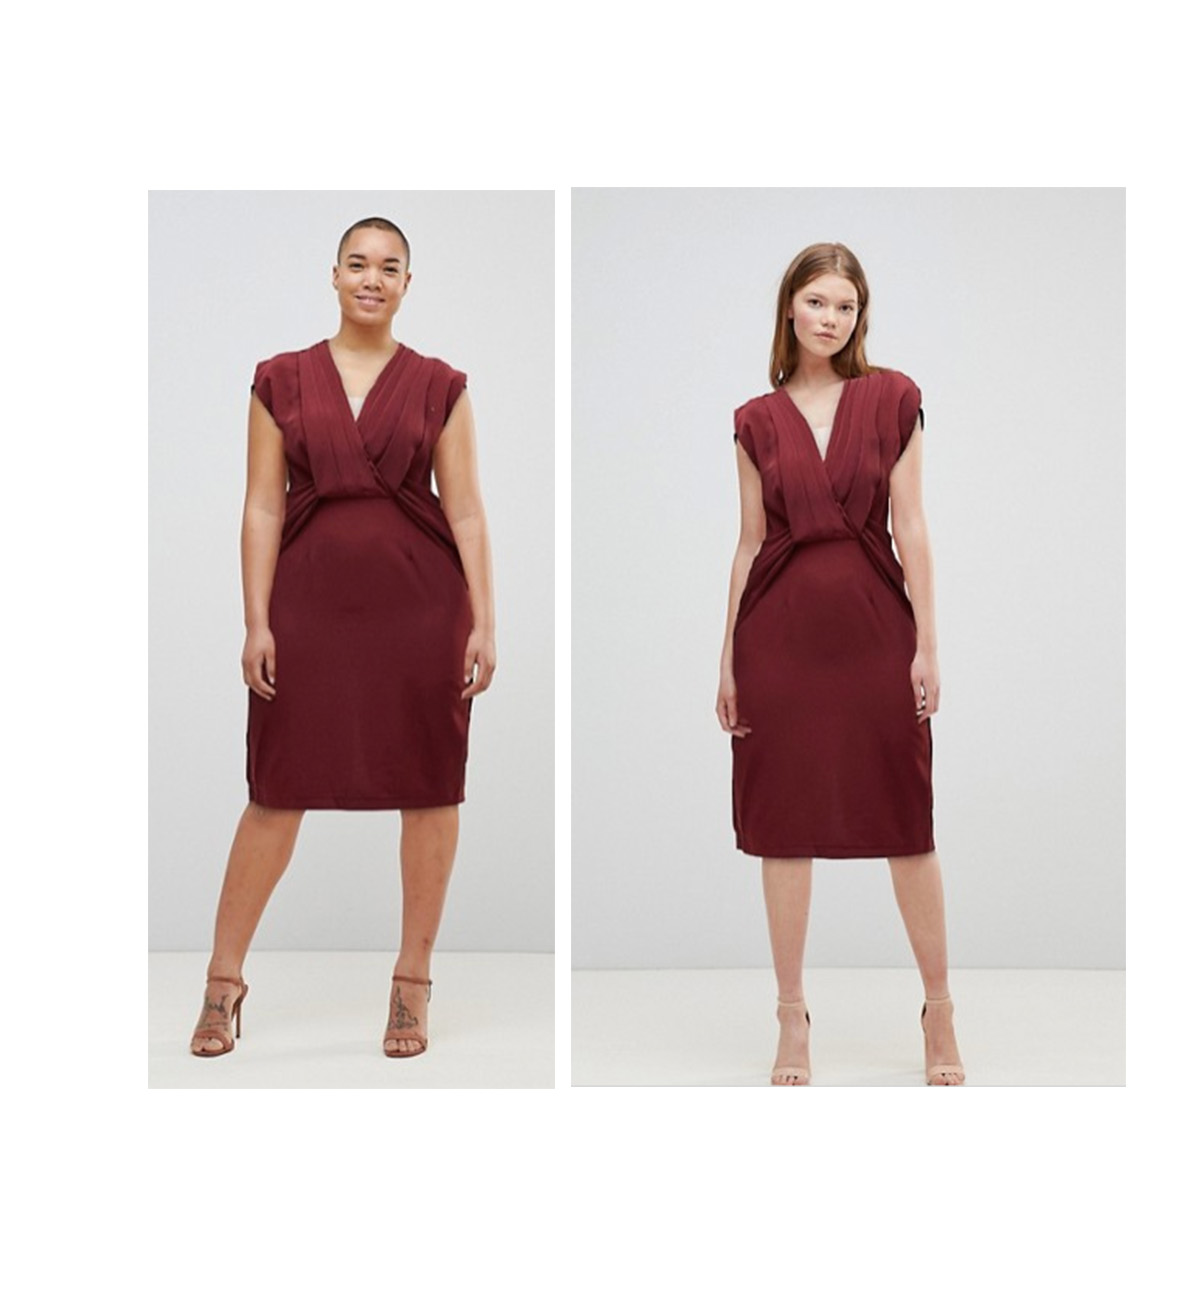 Shopping centre types weight body on bodycon but same dress different price